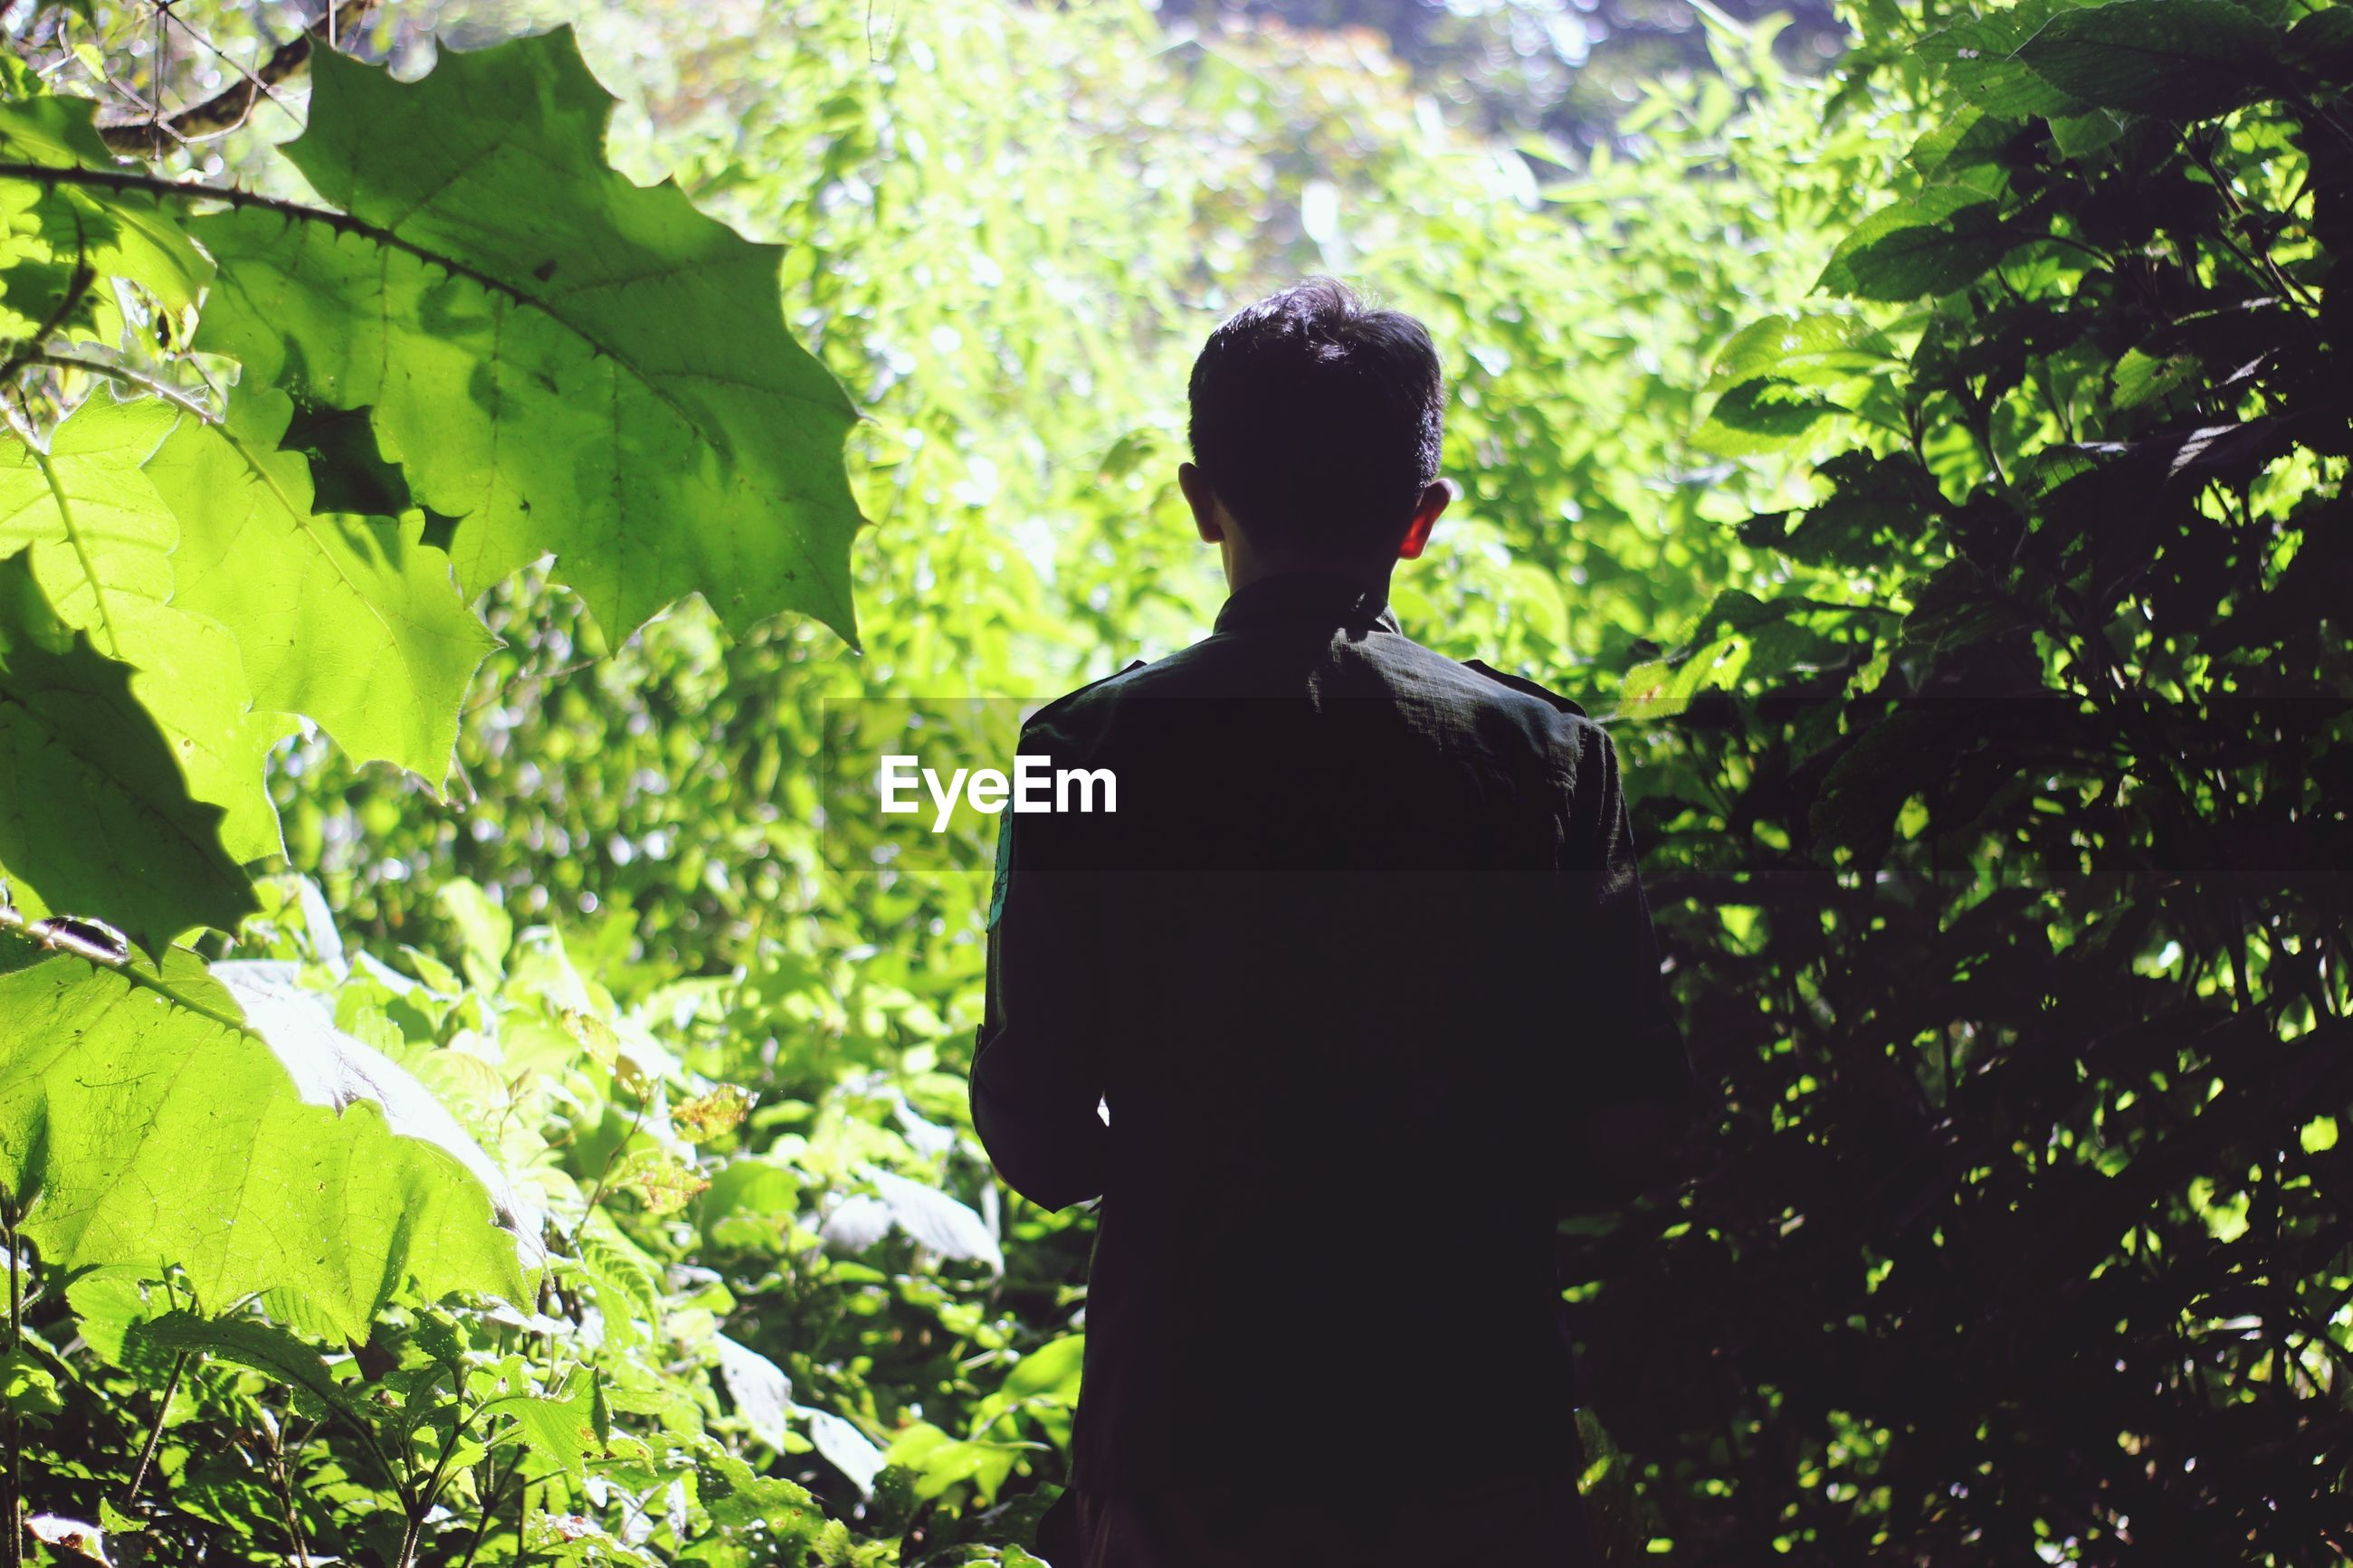 Rear view of young man standing amidst plants in forest